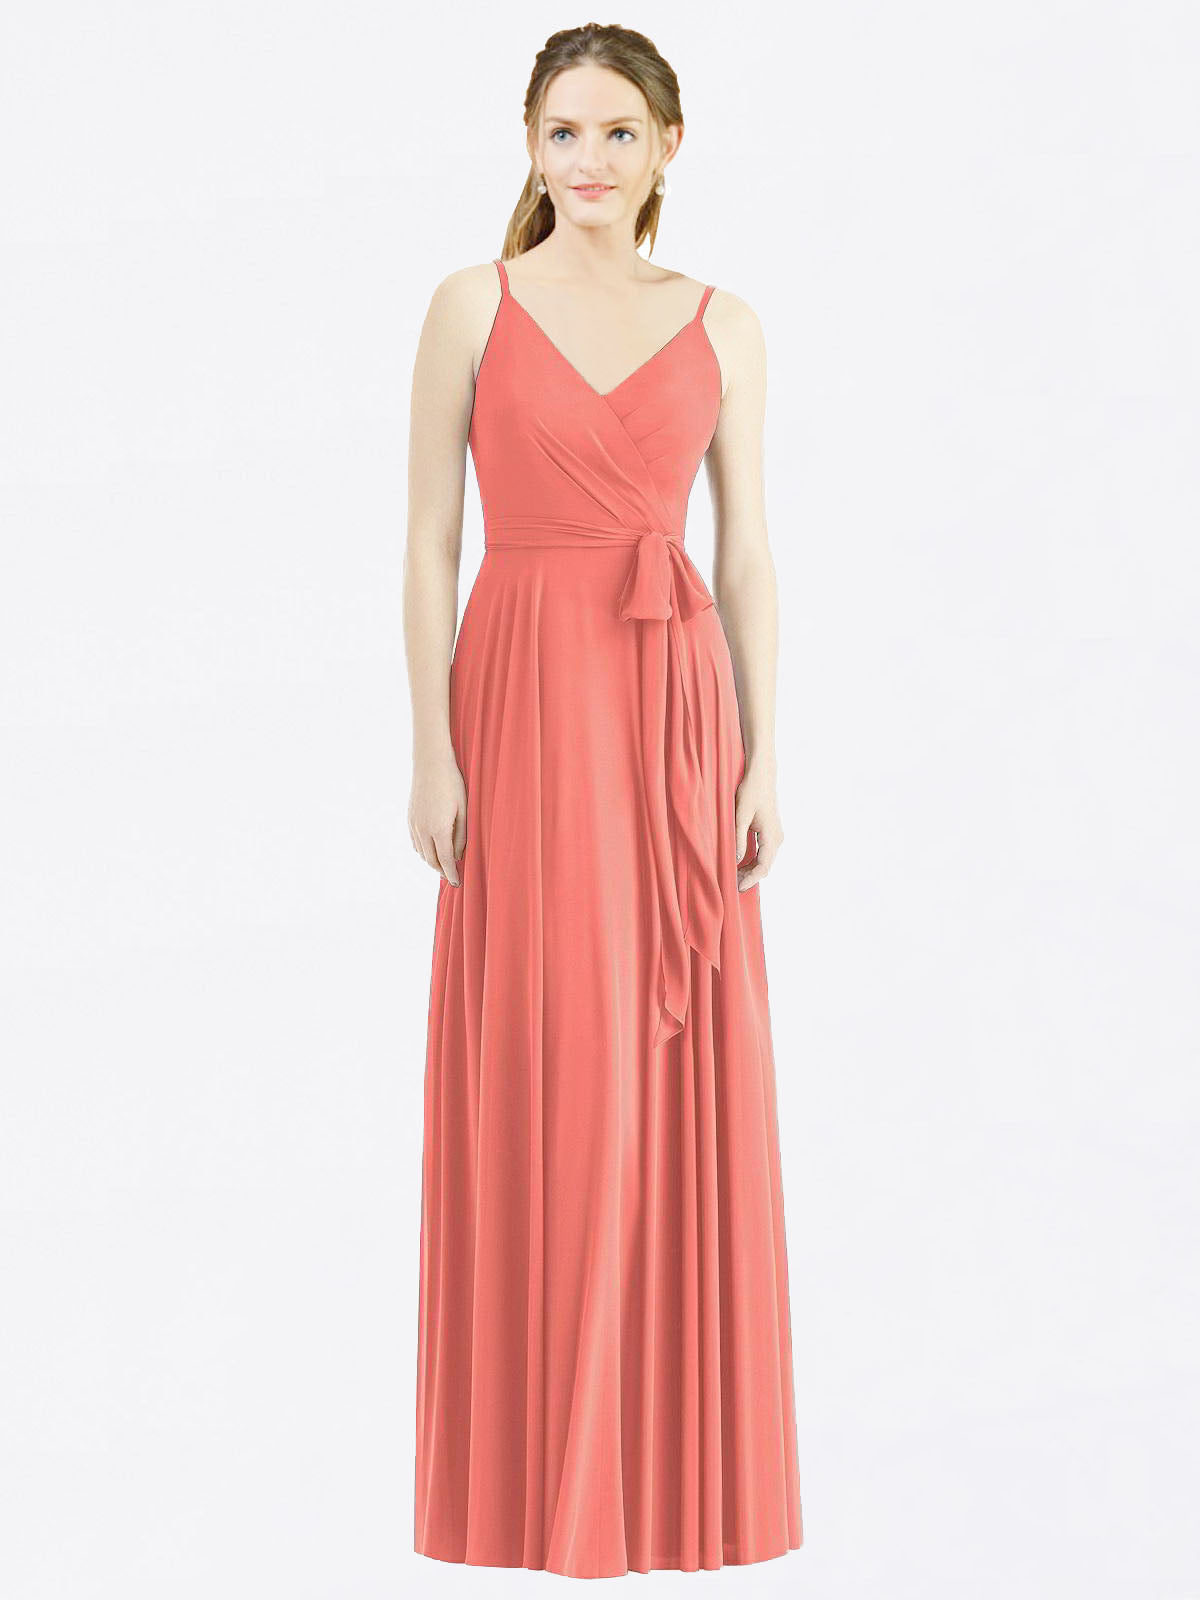 Long A-Line Spaghetti Straps, V-Neck Sleeveless Coral Chiffon Bridesmaid Dress Madilyn